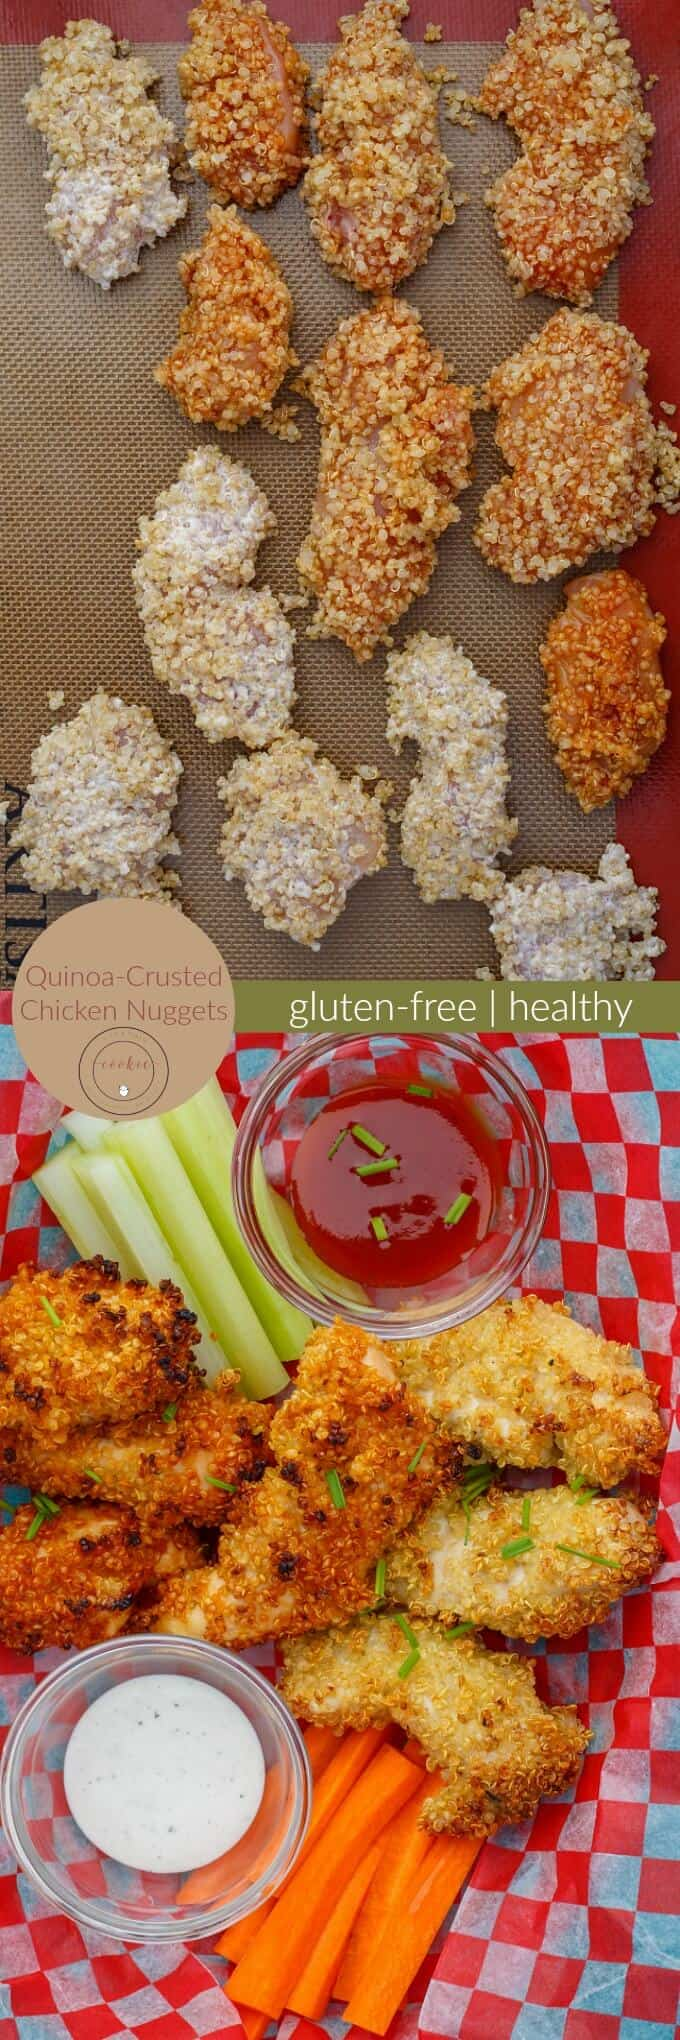 Quinoa-Crusted Chicken Nuggets